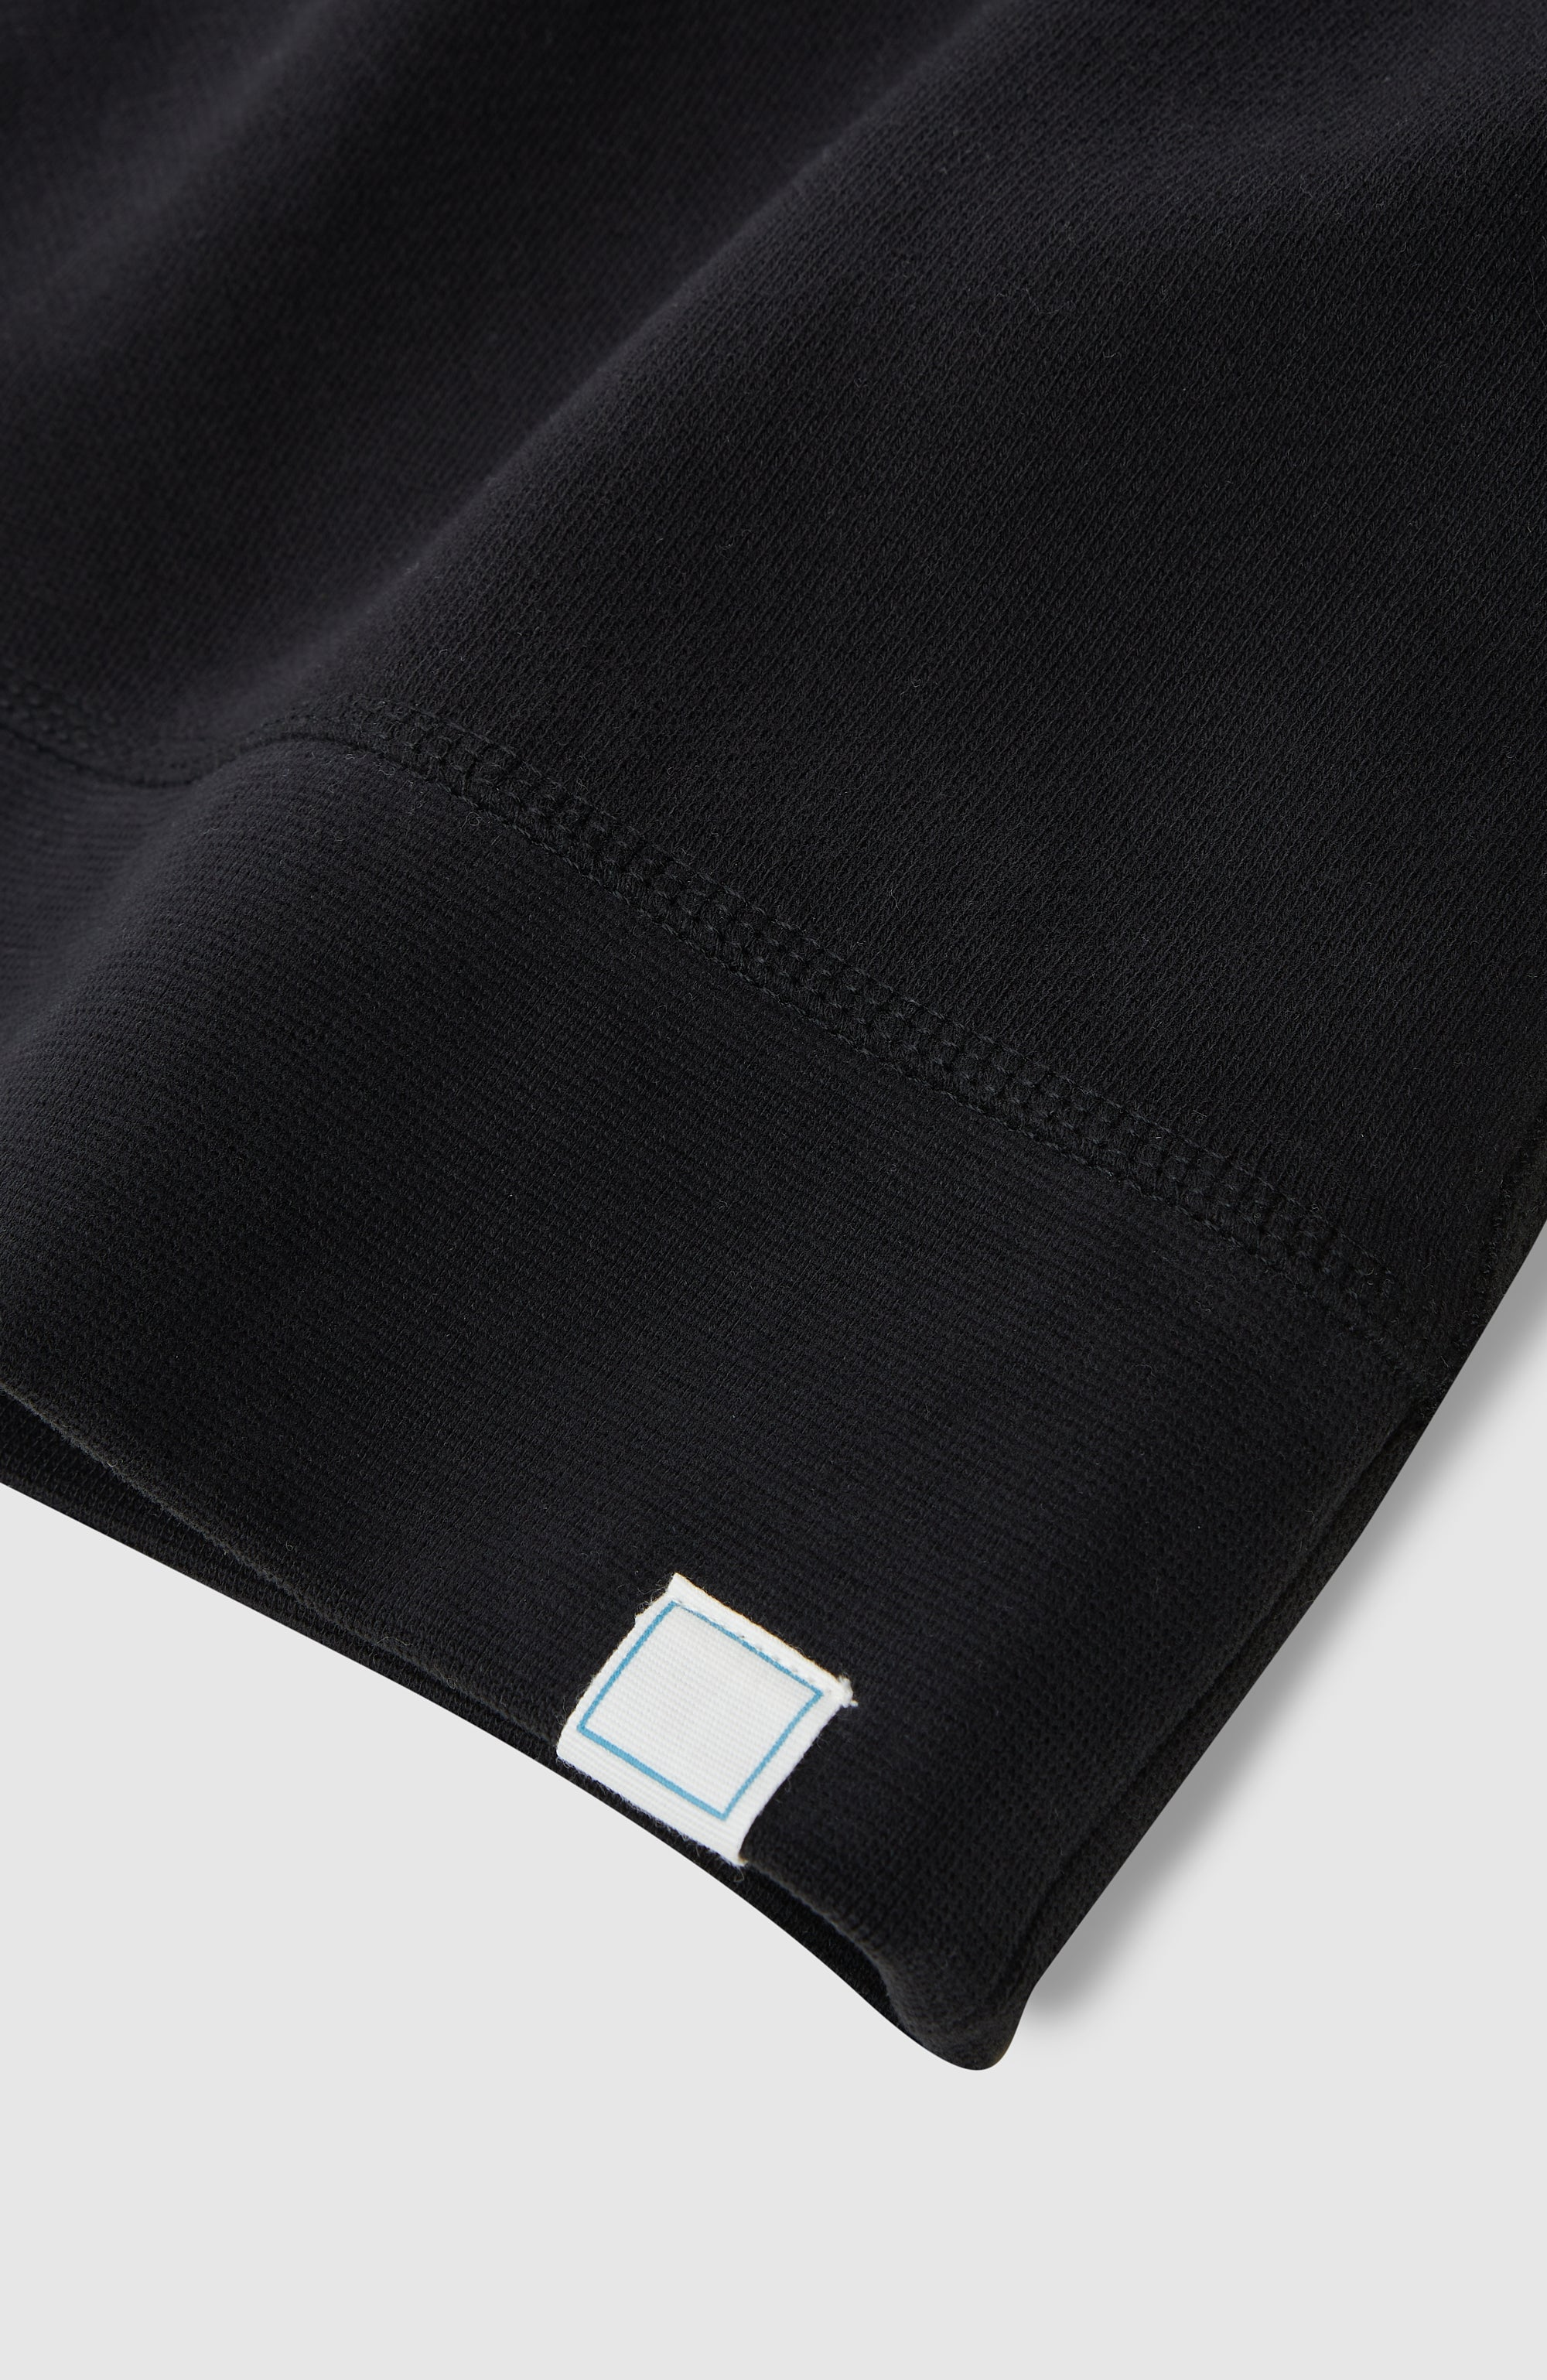 Drop Shoulder Hoodie - Black